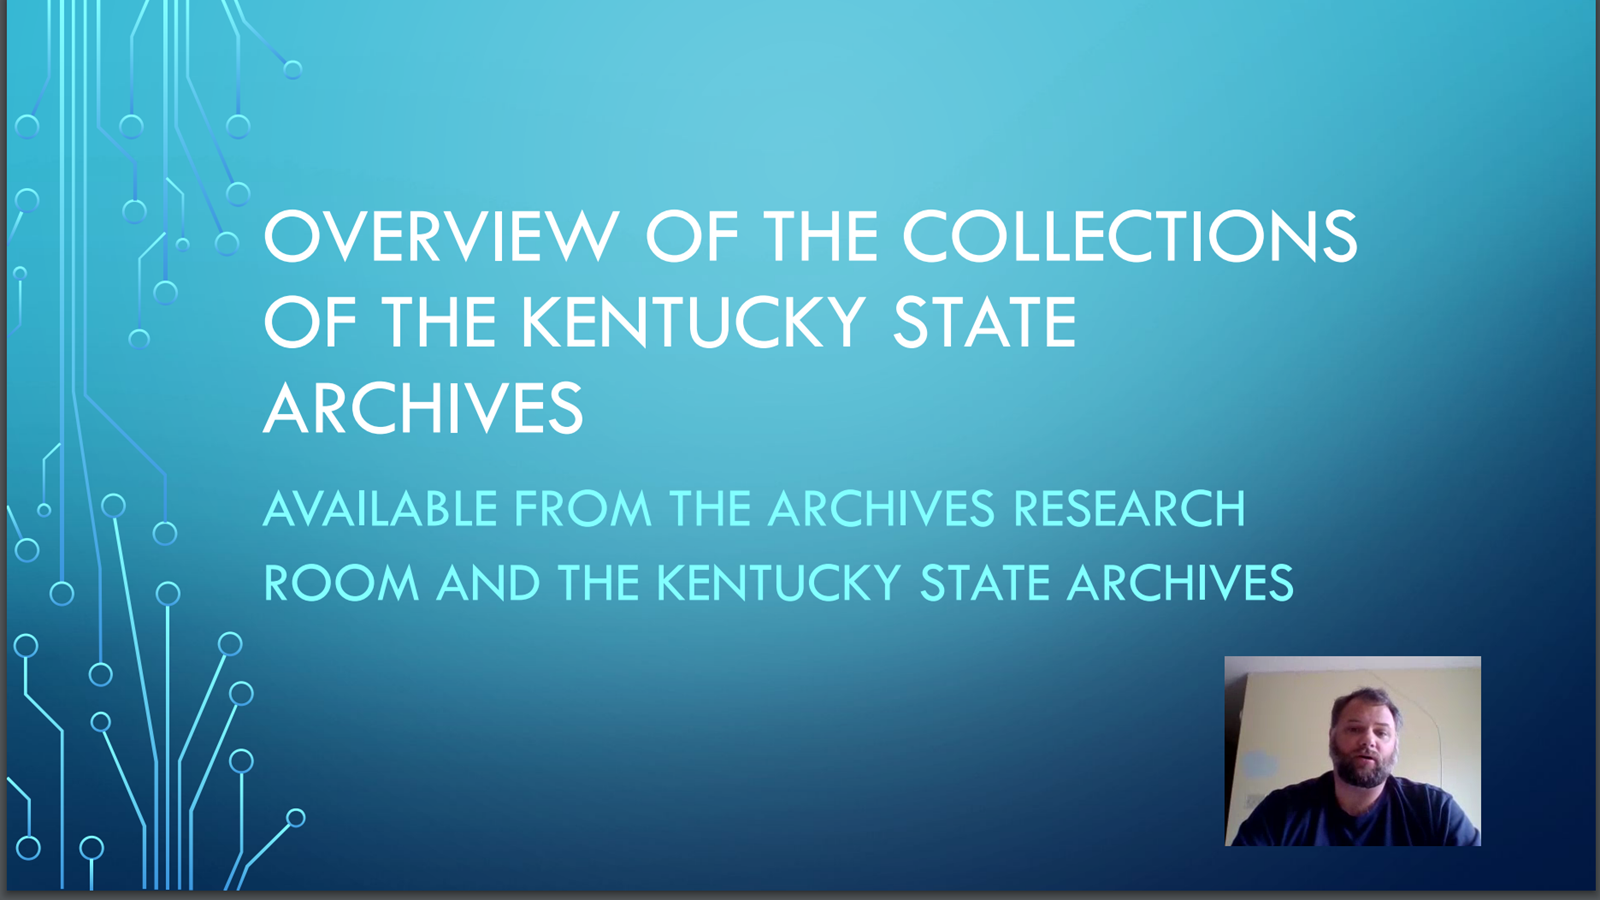 Researching in the KY Archives